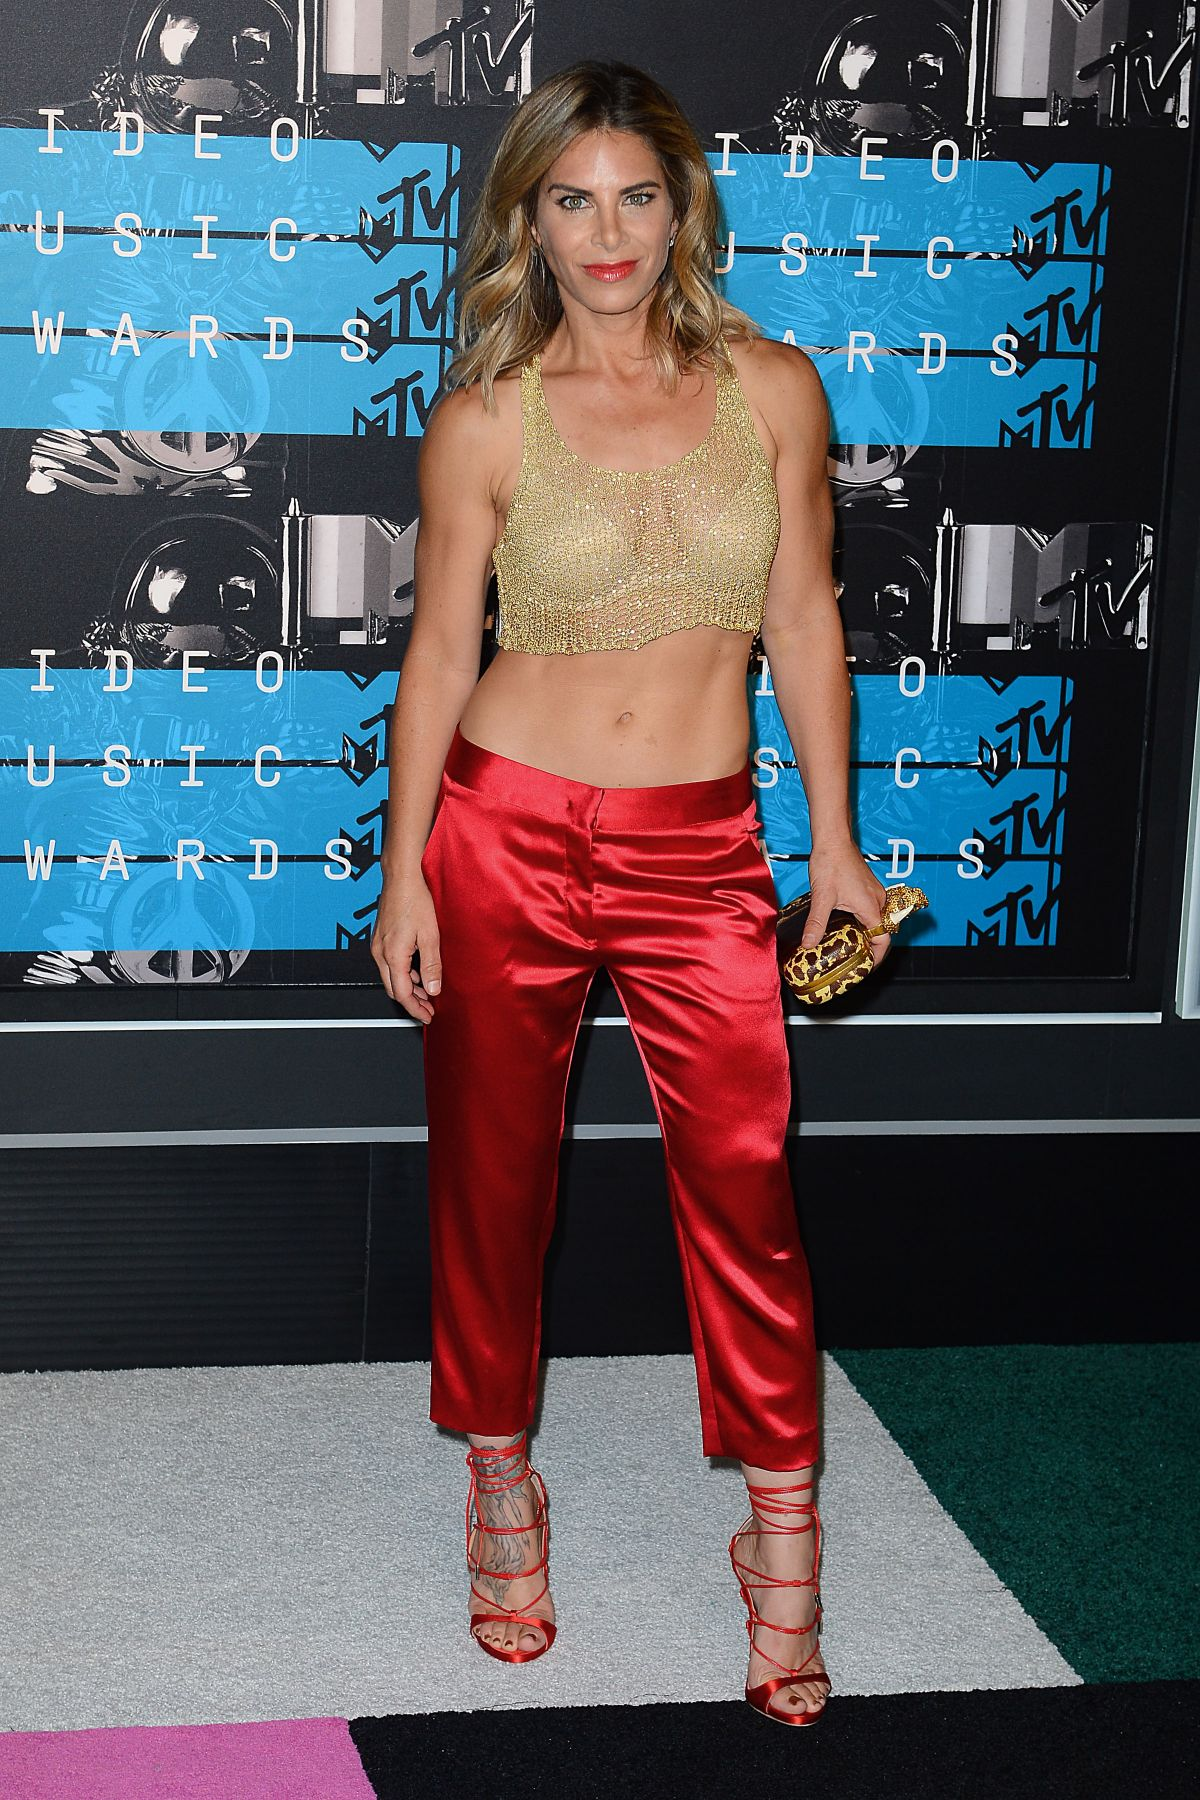 JILLIAN MICHAELS at MTV Video Music Awards 2015 in Los Angeles